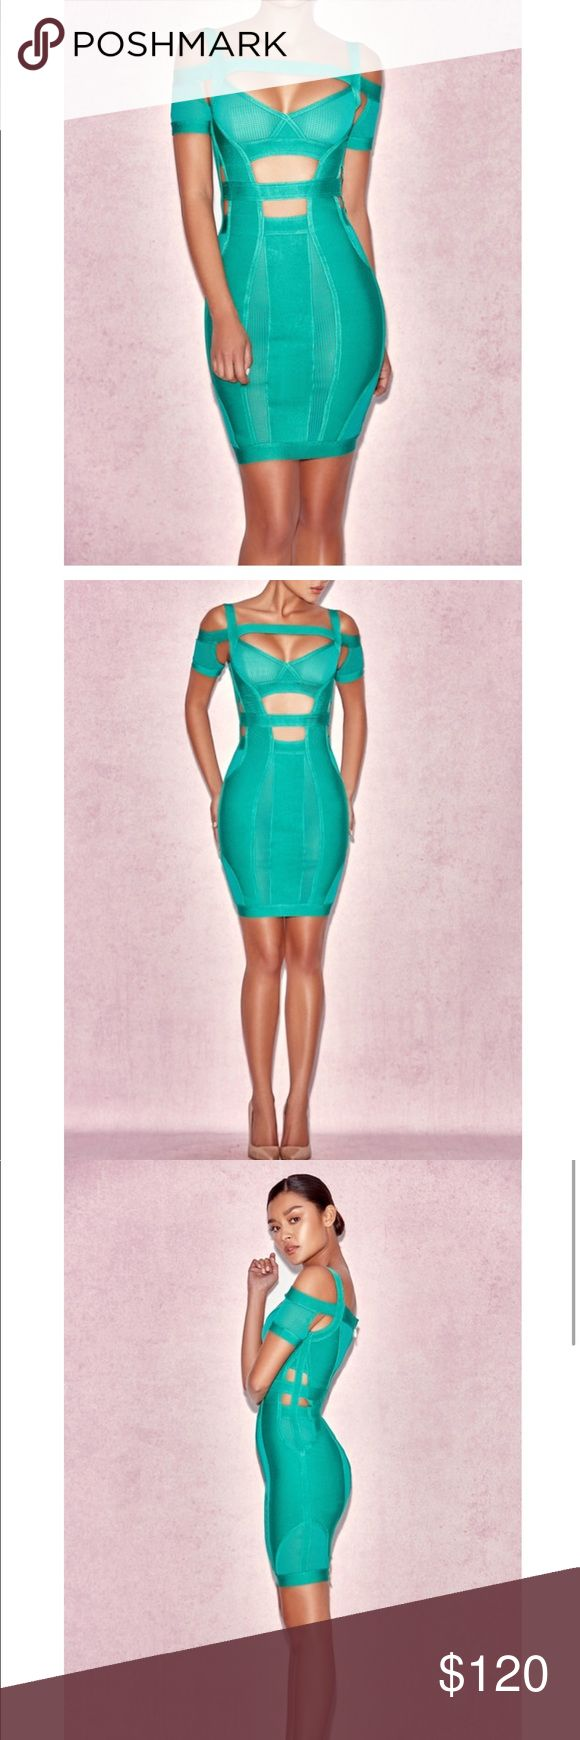 Bandage dress Sexy green bandage dress. Perfect for the summer. (Under bebe for views) dress have never been worn. But I took off the tags. bebe Dresses Mini